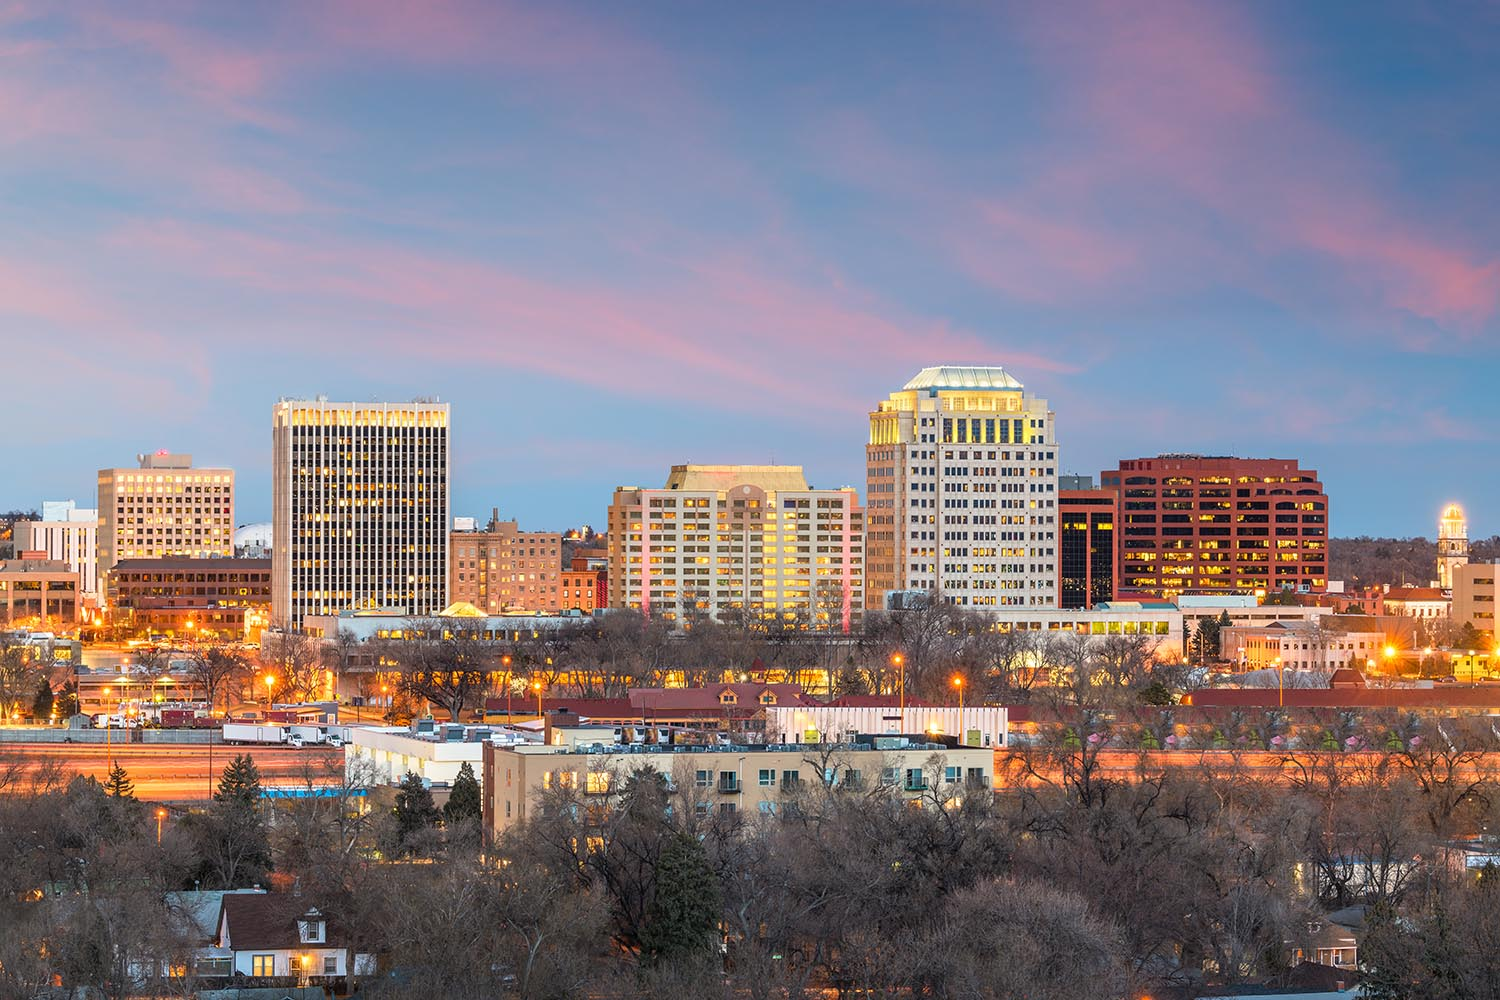 colorado-springs-colorado-usa-downtown-city